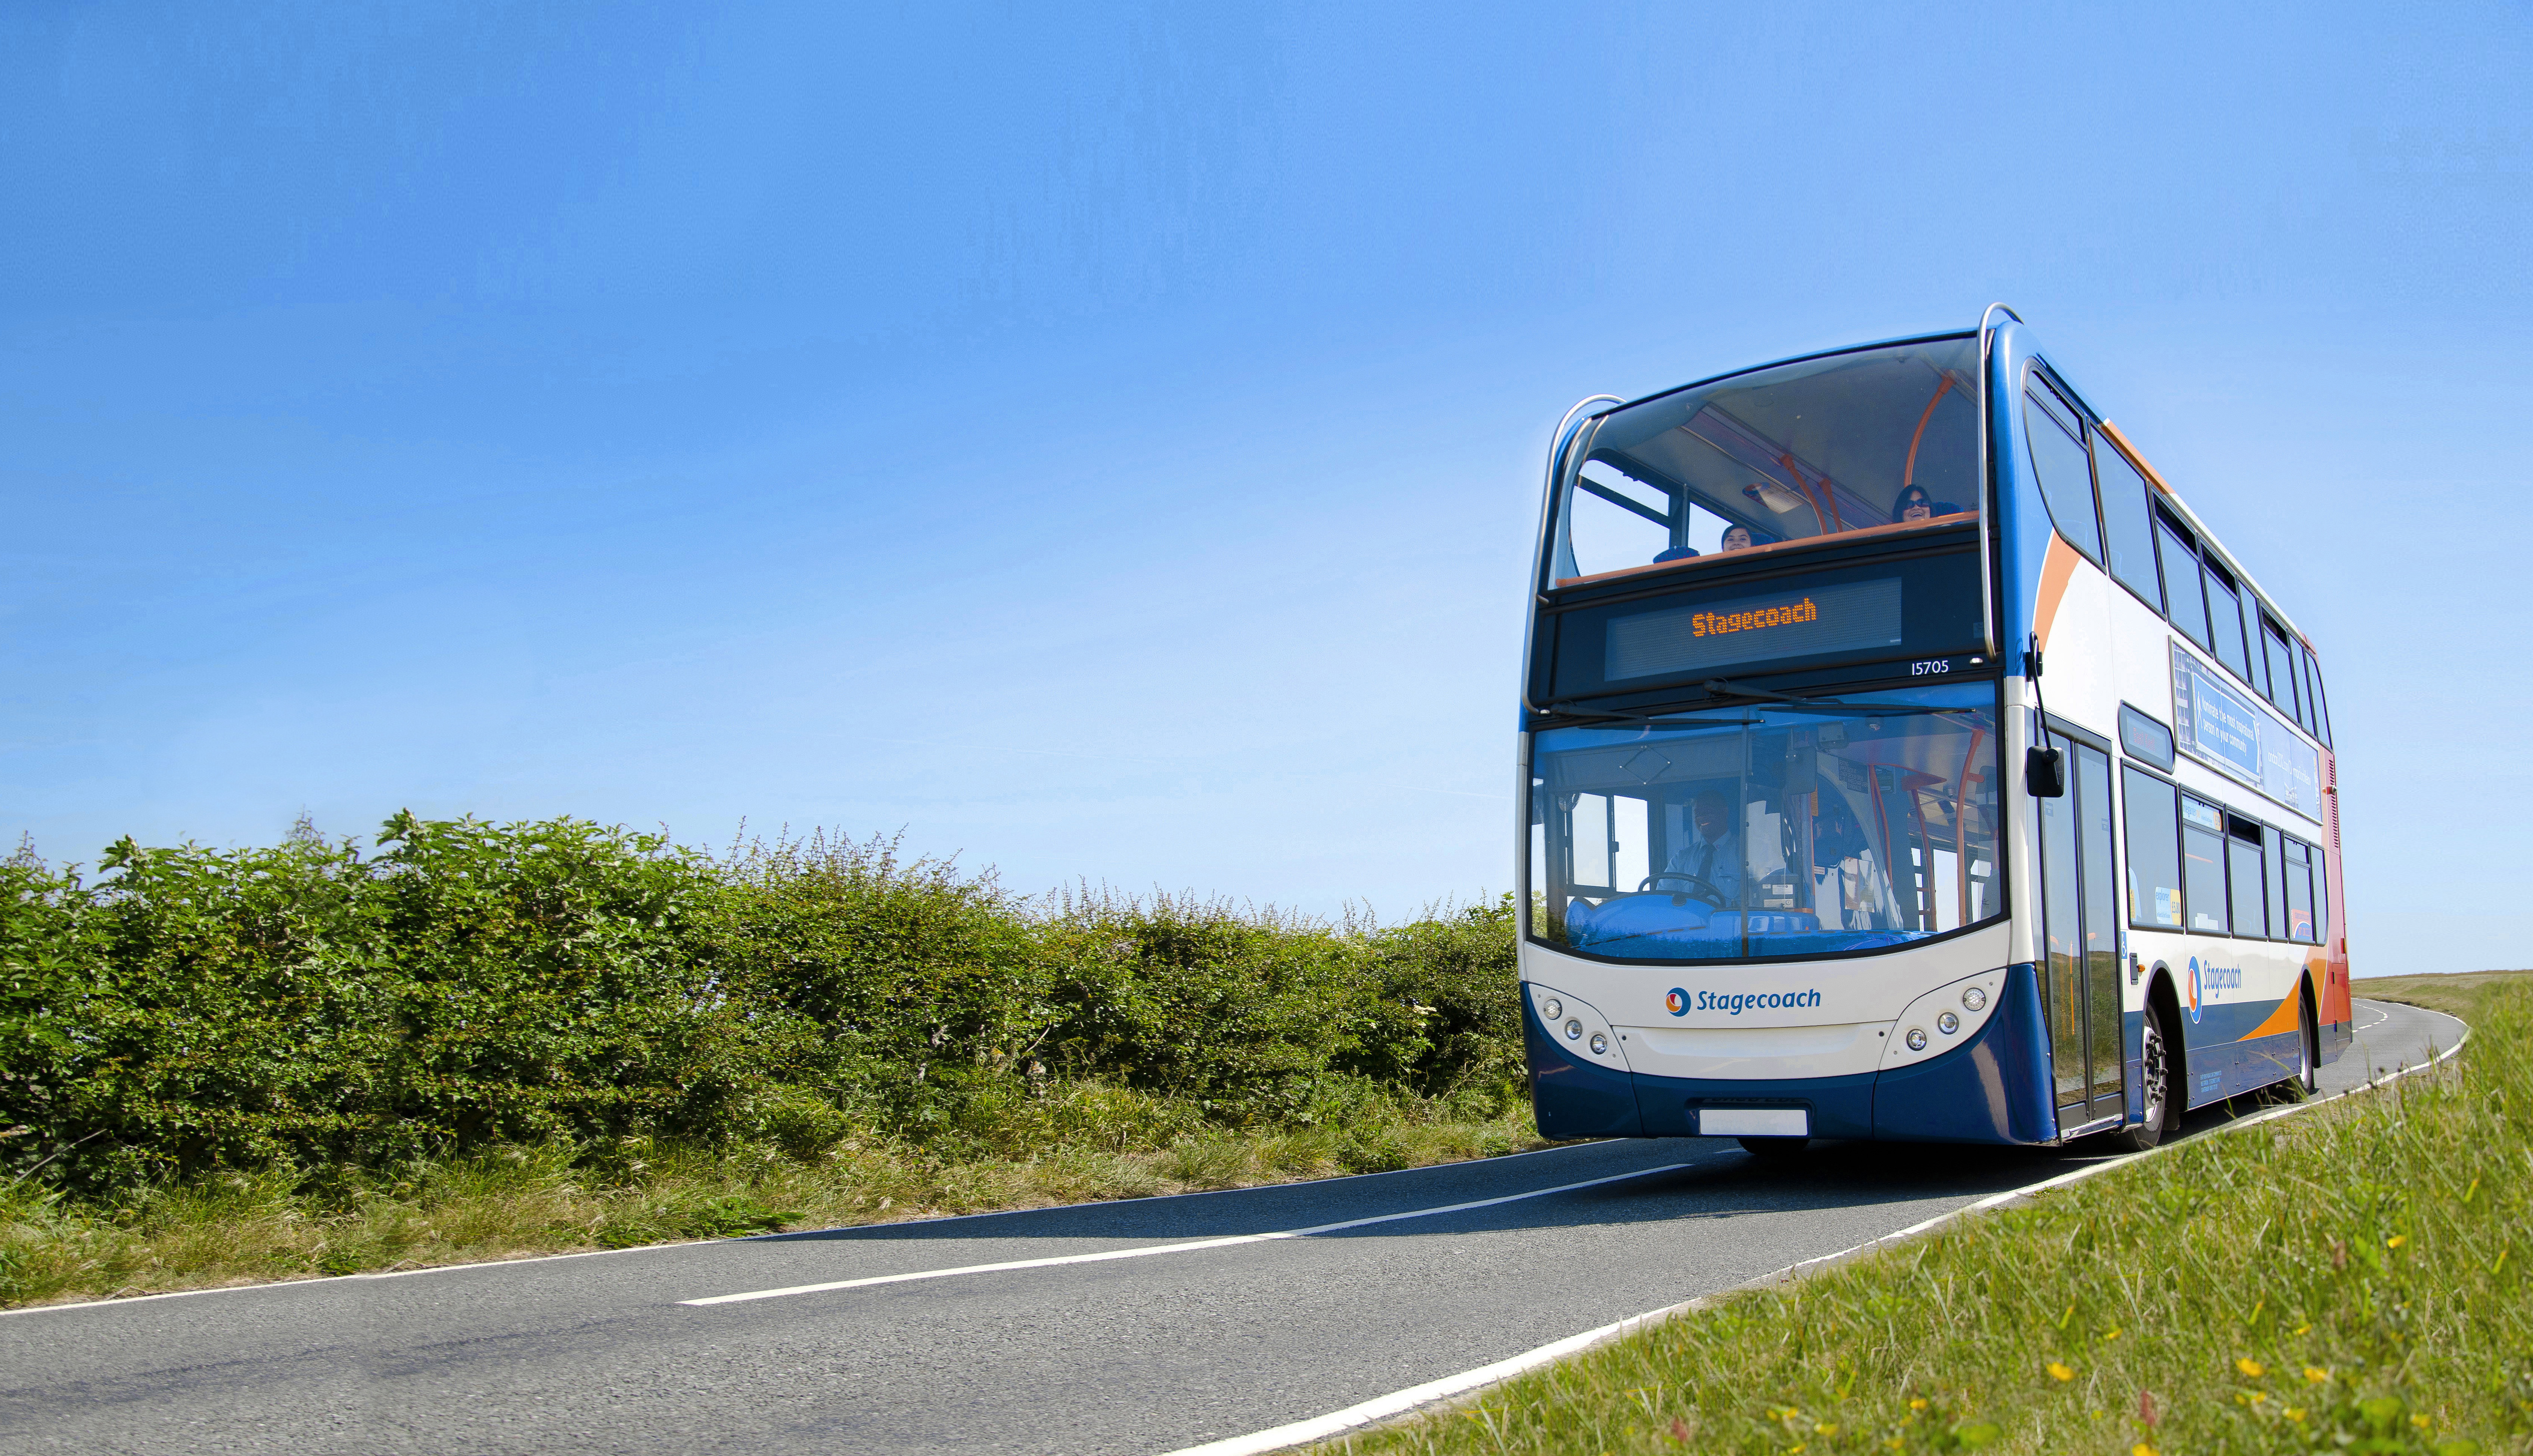 Stagecoach have launched a busy bus indicator on their smartphone app